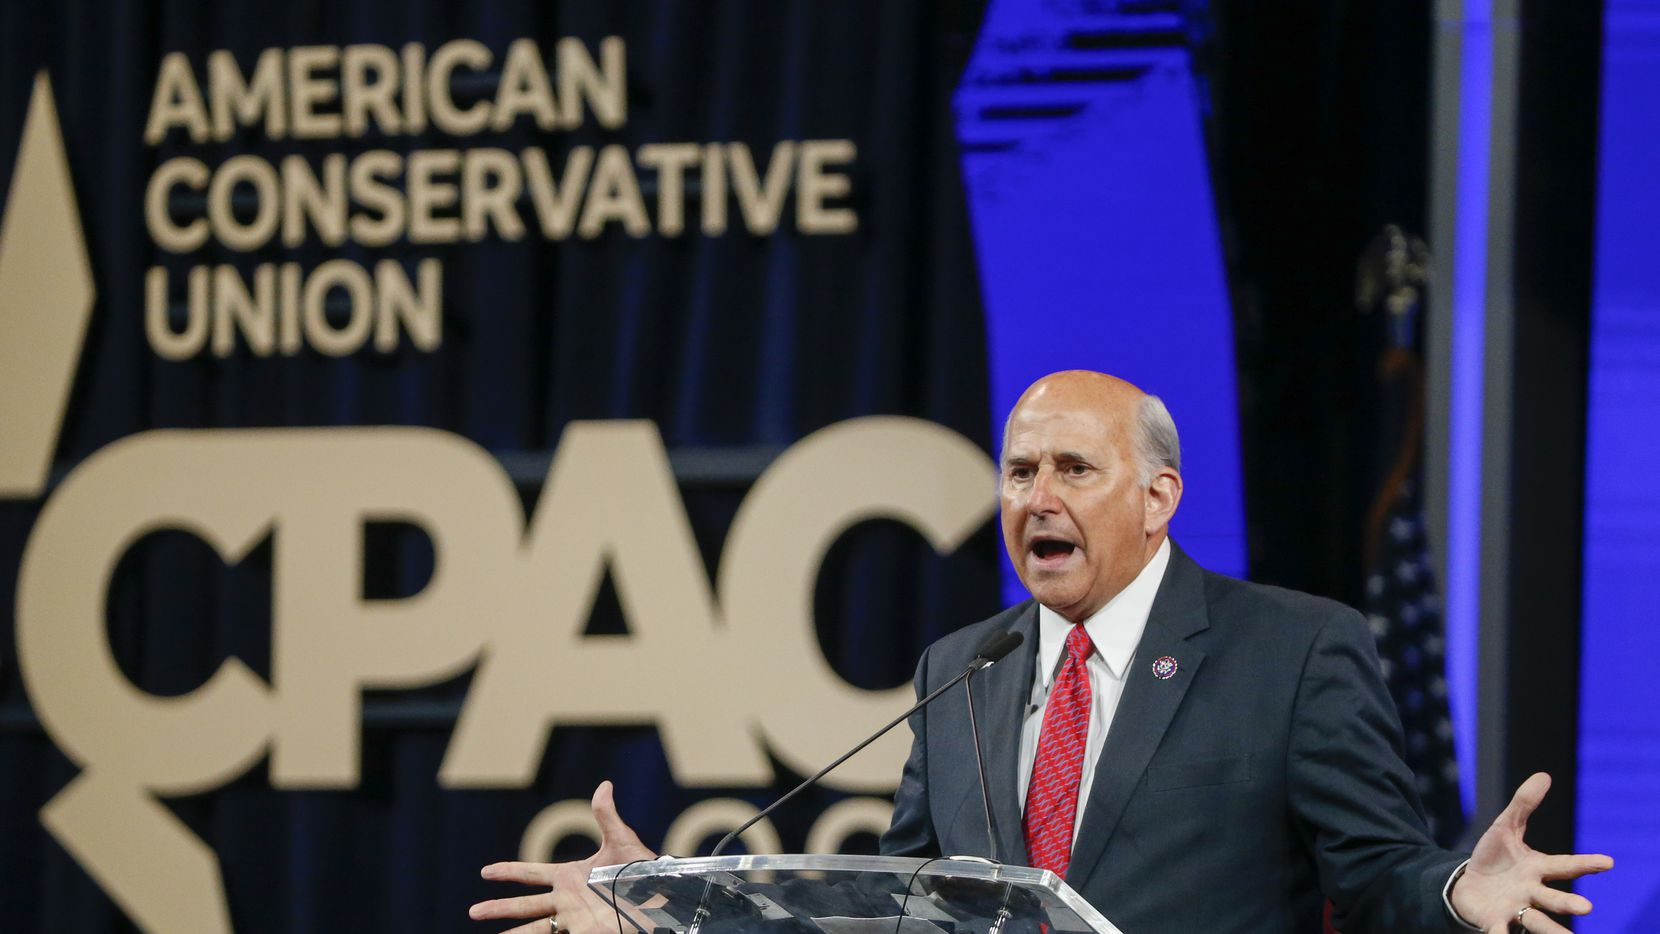 Rep. Louie Gohmert speaks at the Conservative Political Action Conference on Sunday, July 11, 2021, at the Hilton Anatole in Dallas.